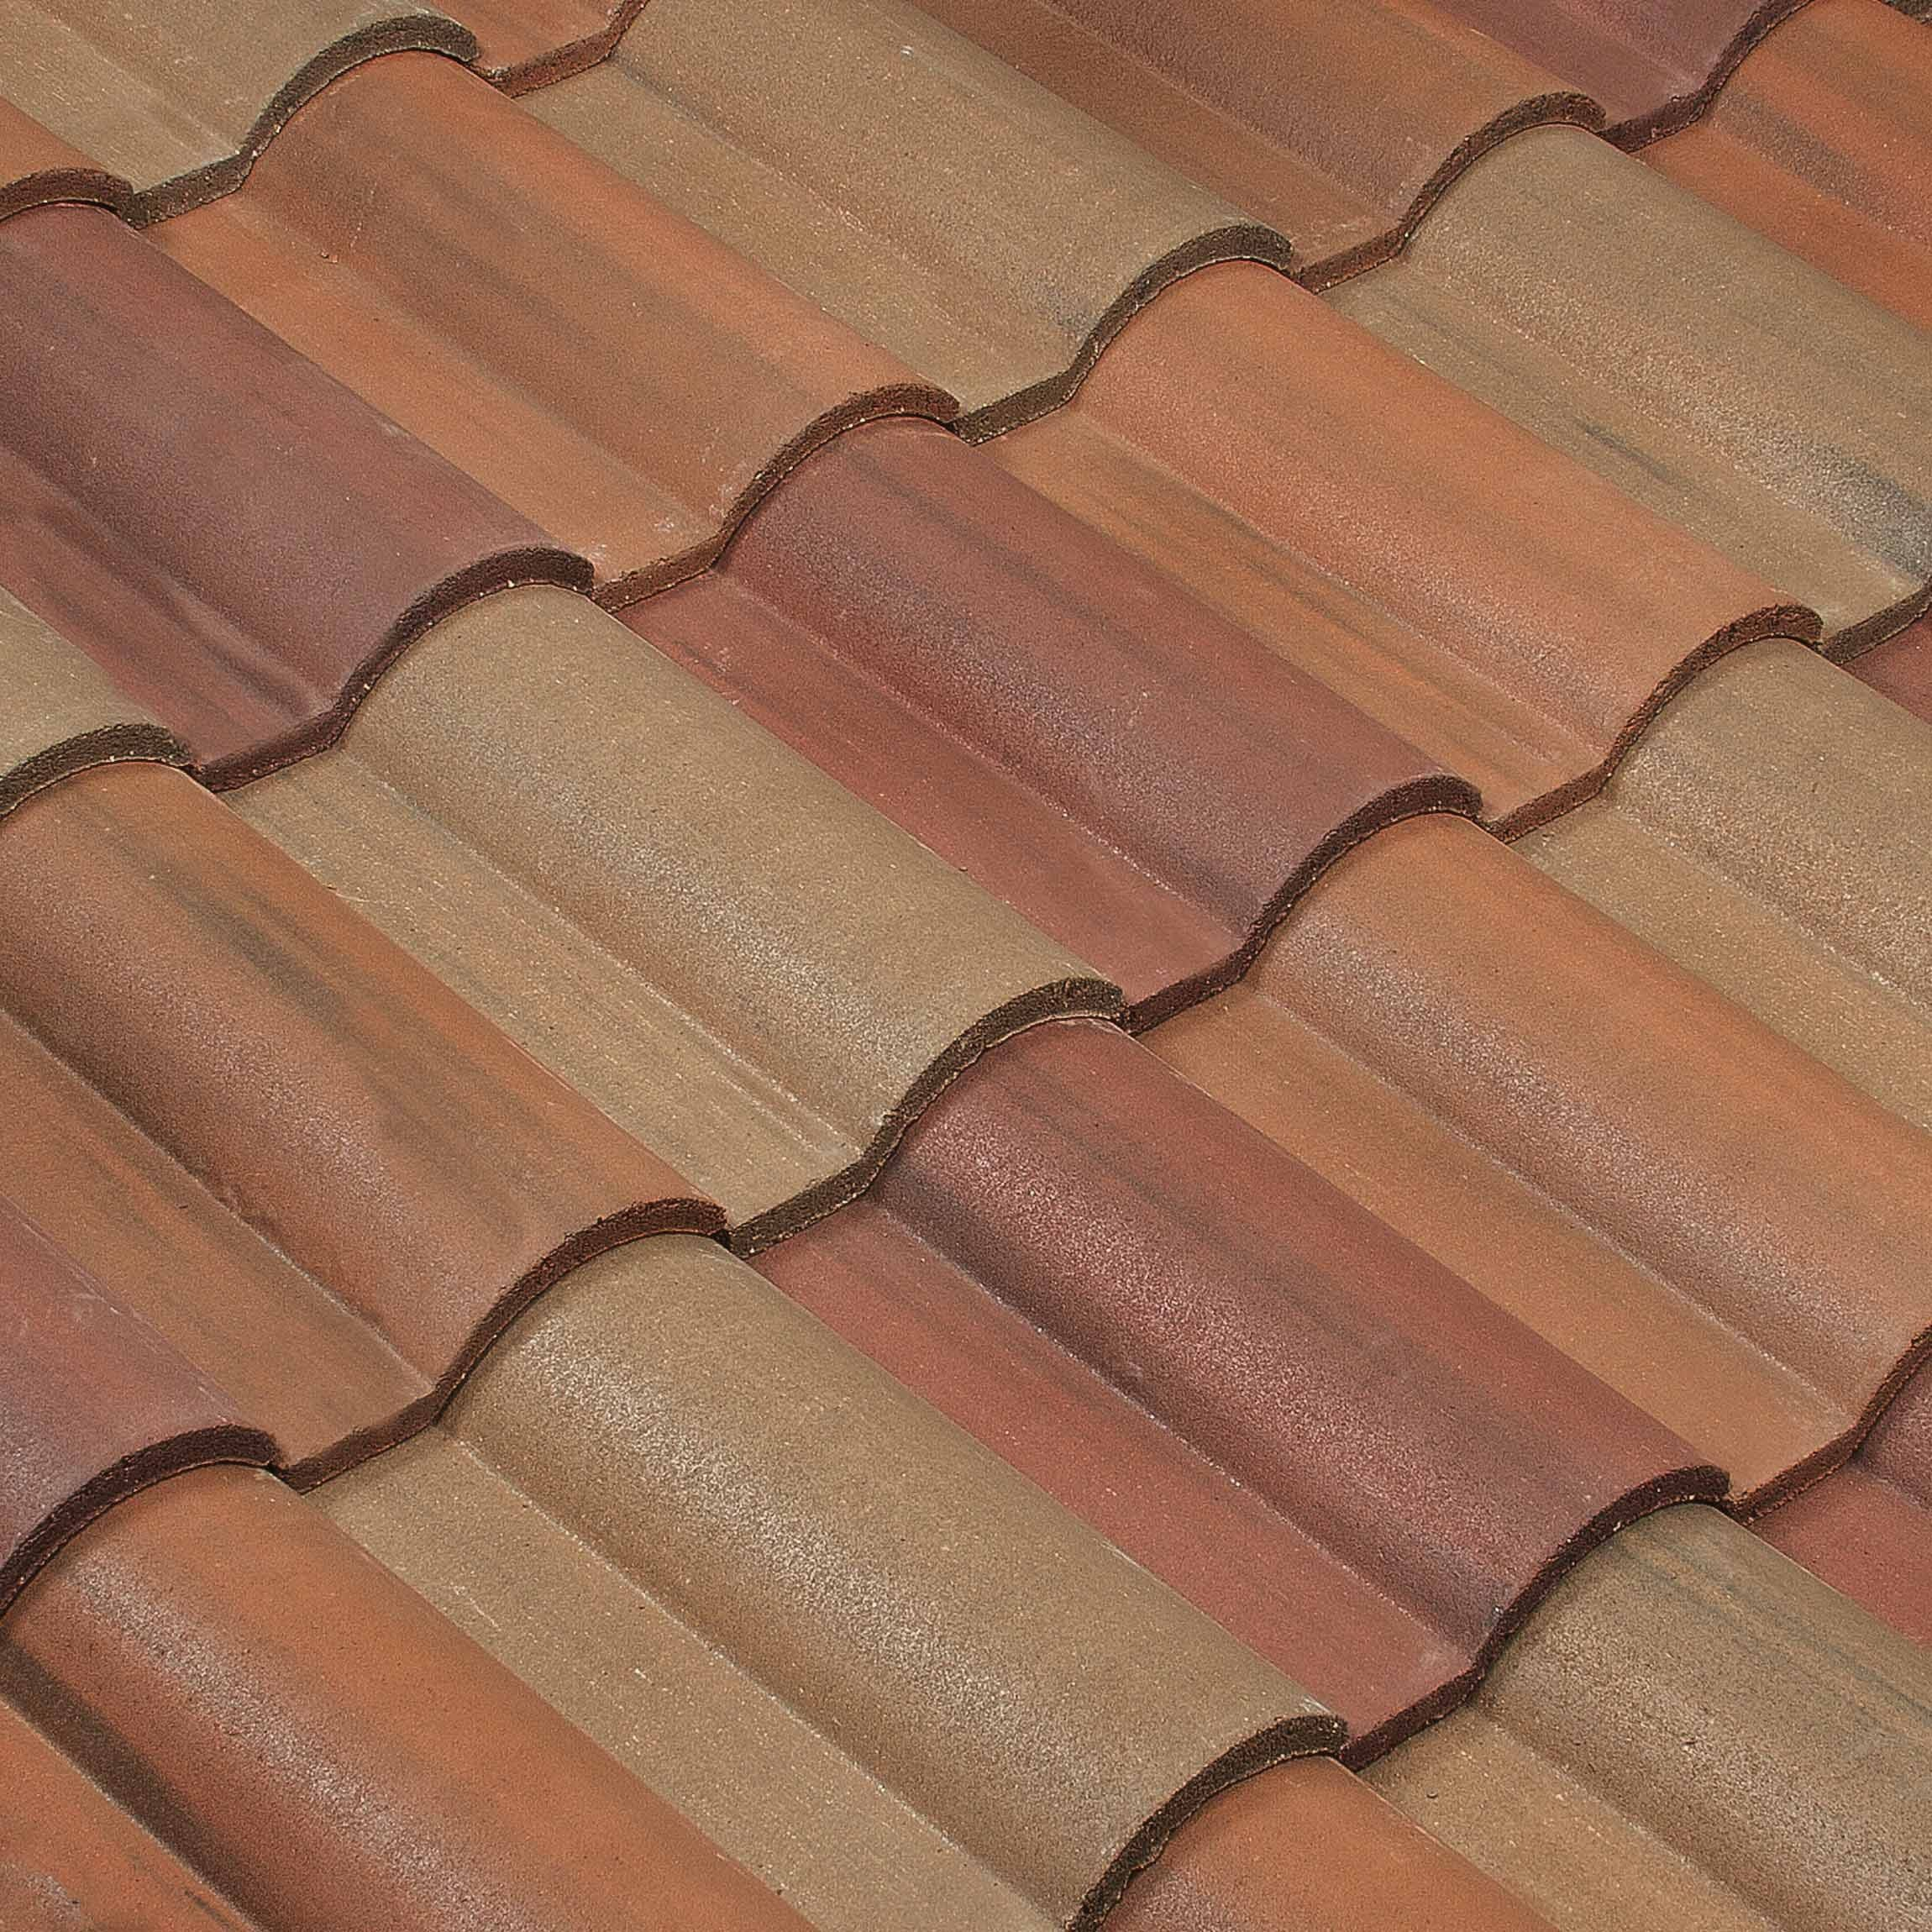 Galena Roof Tile